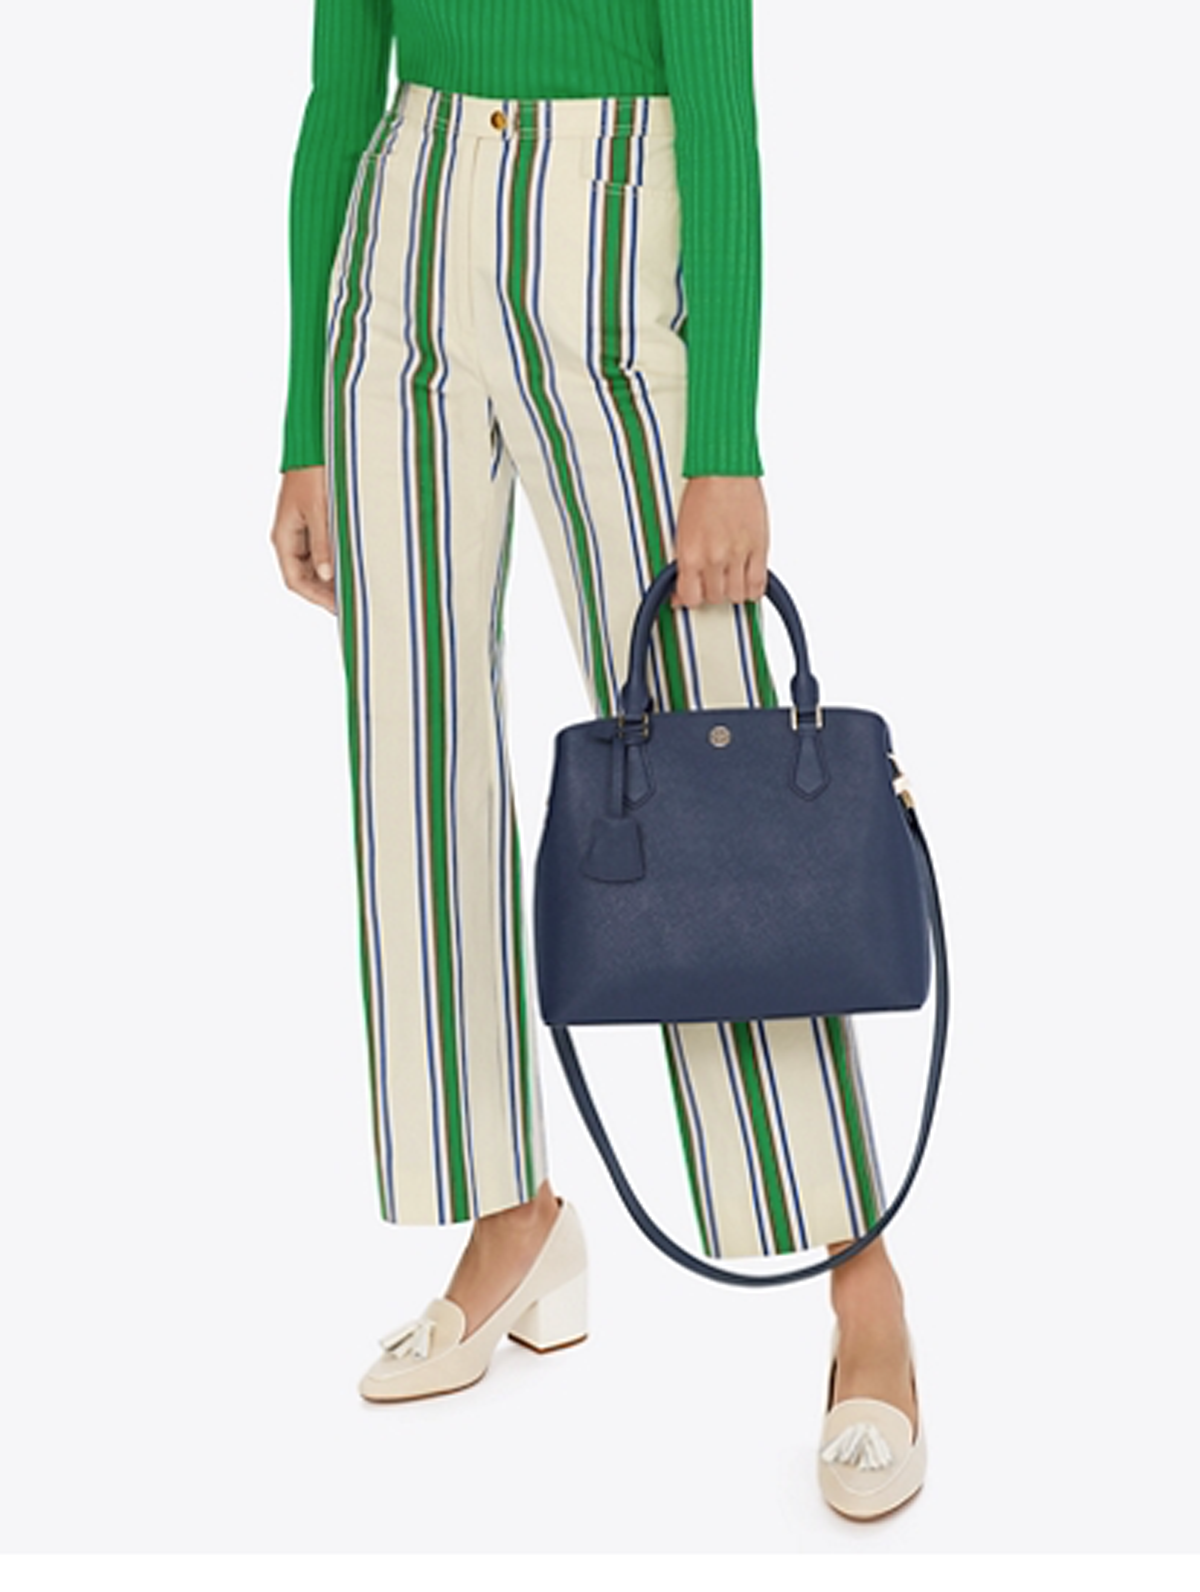 Nwt Tory Burch Navy Saffiano Leder Robinson Triple-Compartment Tote $ 458